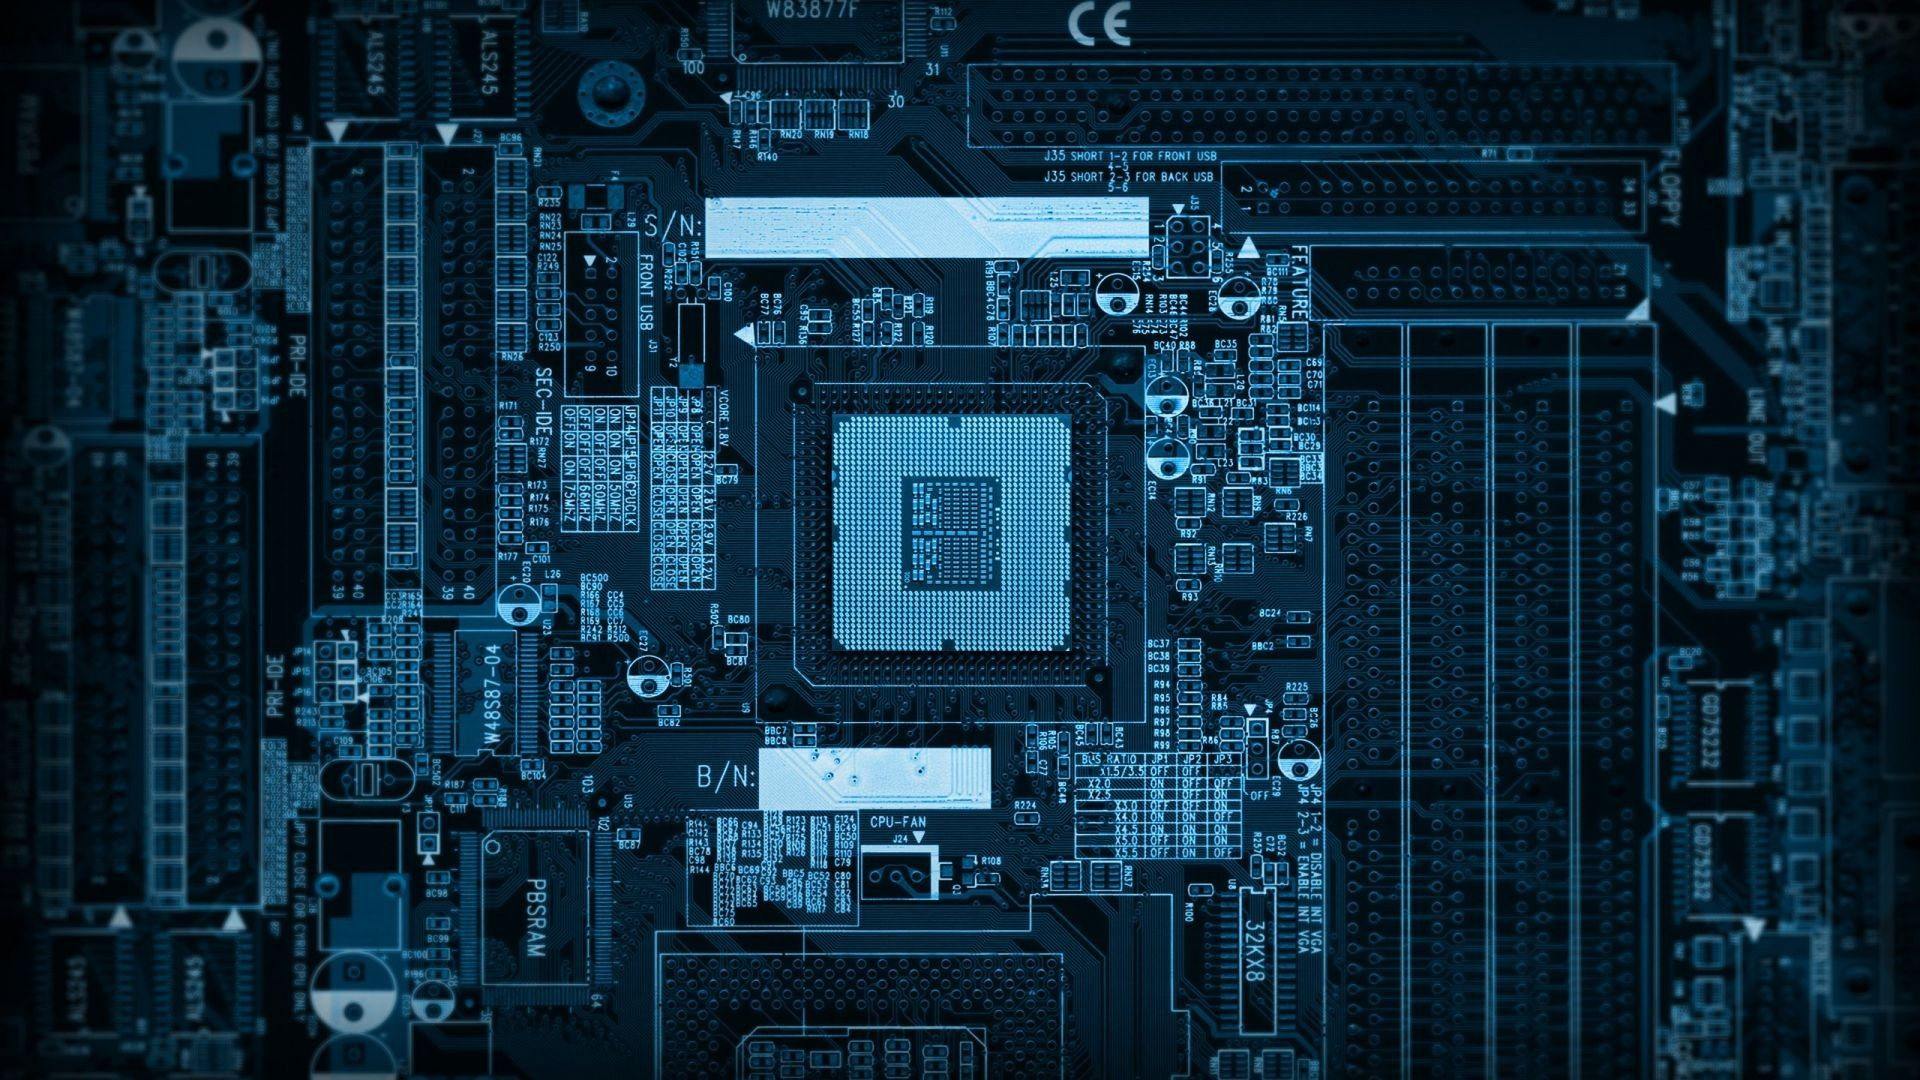 image for free intel inside motherboard technology hd wallpaper